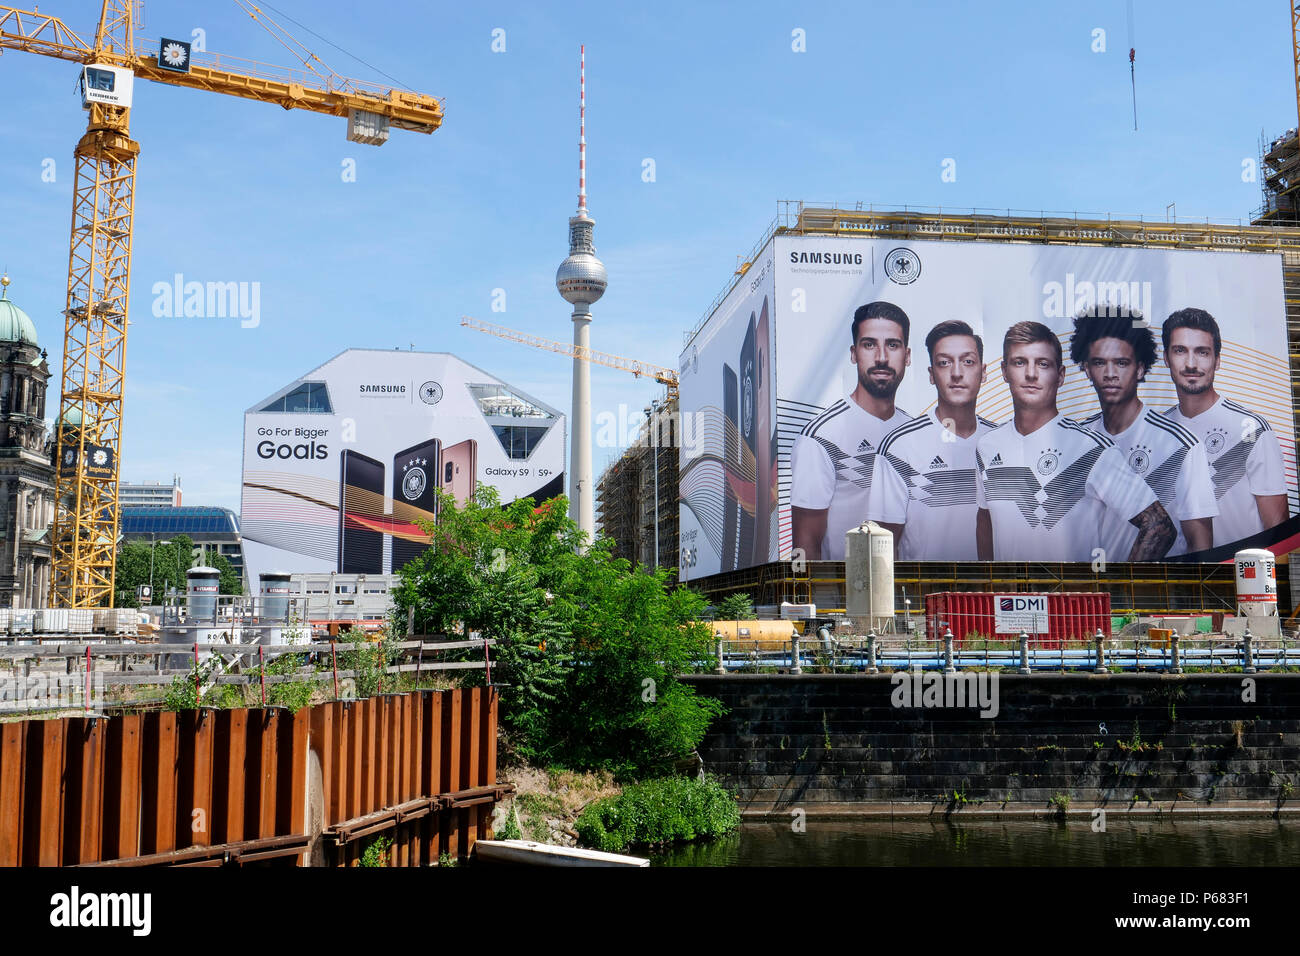 GERMANY, Samsung advertisement with german soccer team during Fifa world championship 2018 in Russia at construction site of Berlin castle, only advertising no soccer performance / Deutschland, Berlin, ausser Werbung nichts gewesen, Samsung Werbung mit der deutschen Nationalelf zur FIFA WM Russland 2018 - Stock Image